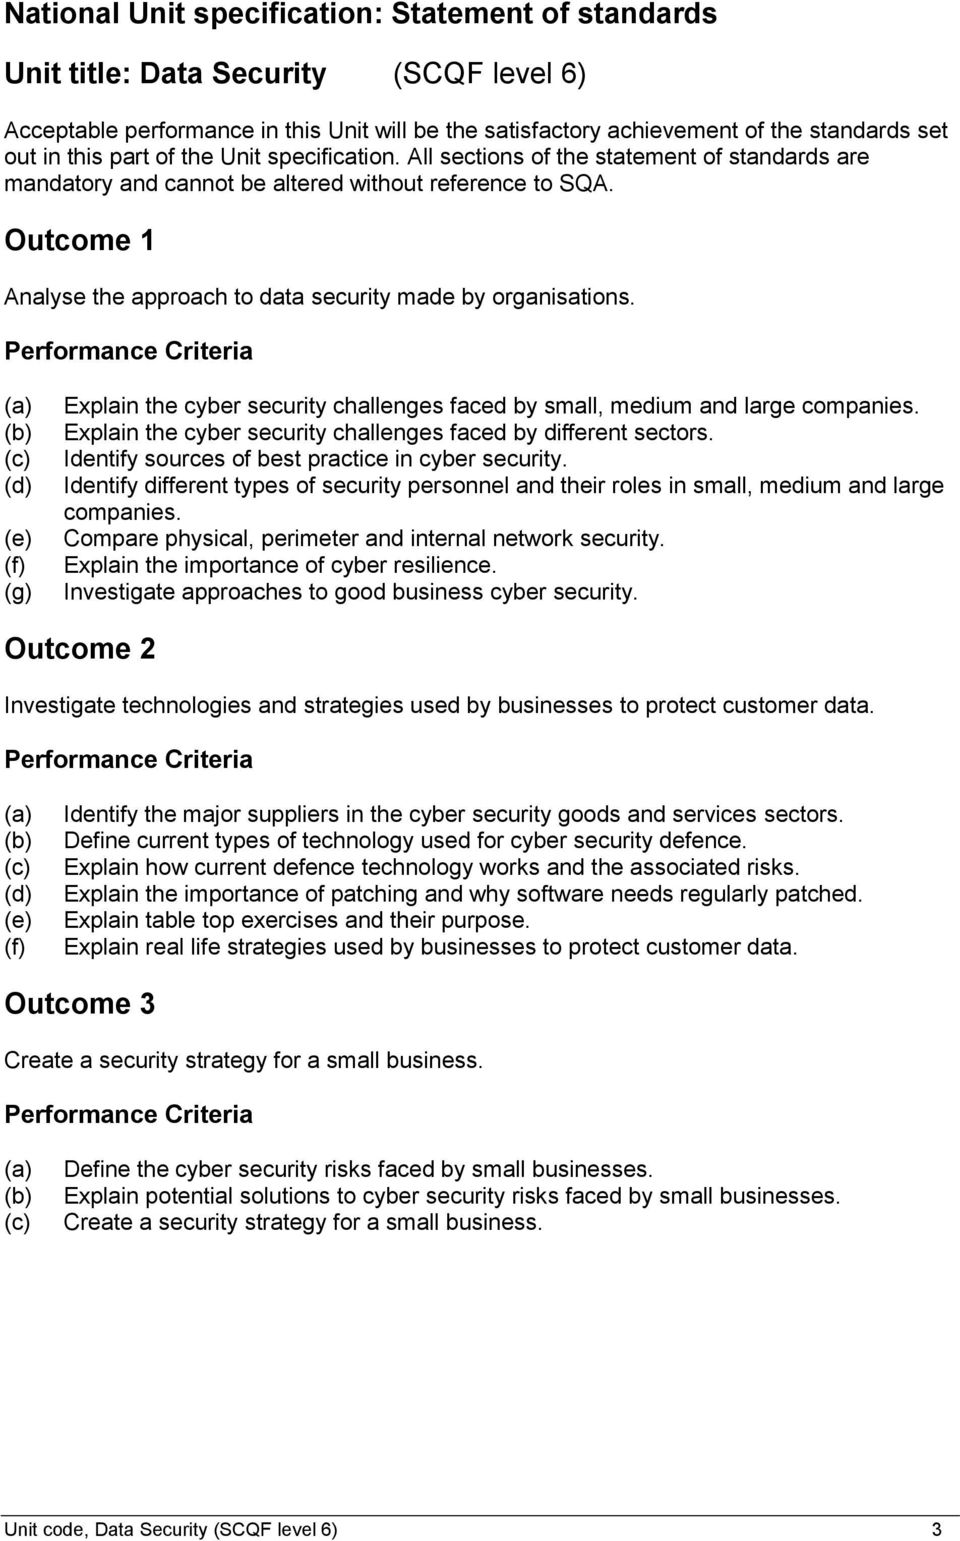 Performance Criteria (a) (b) (c) (d) (e) (f) (g) Explain the cyber security challenges faced by small, medium and large companies. Explain the cyber security challenges faced by different sectors.